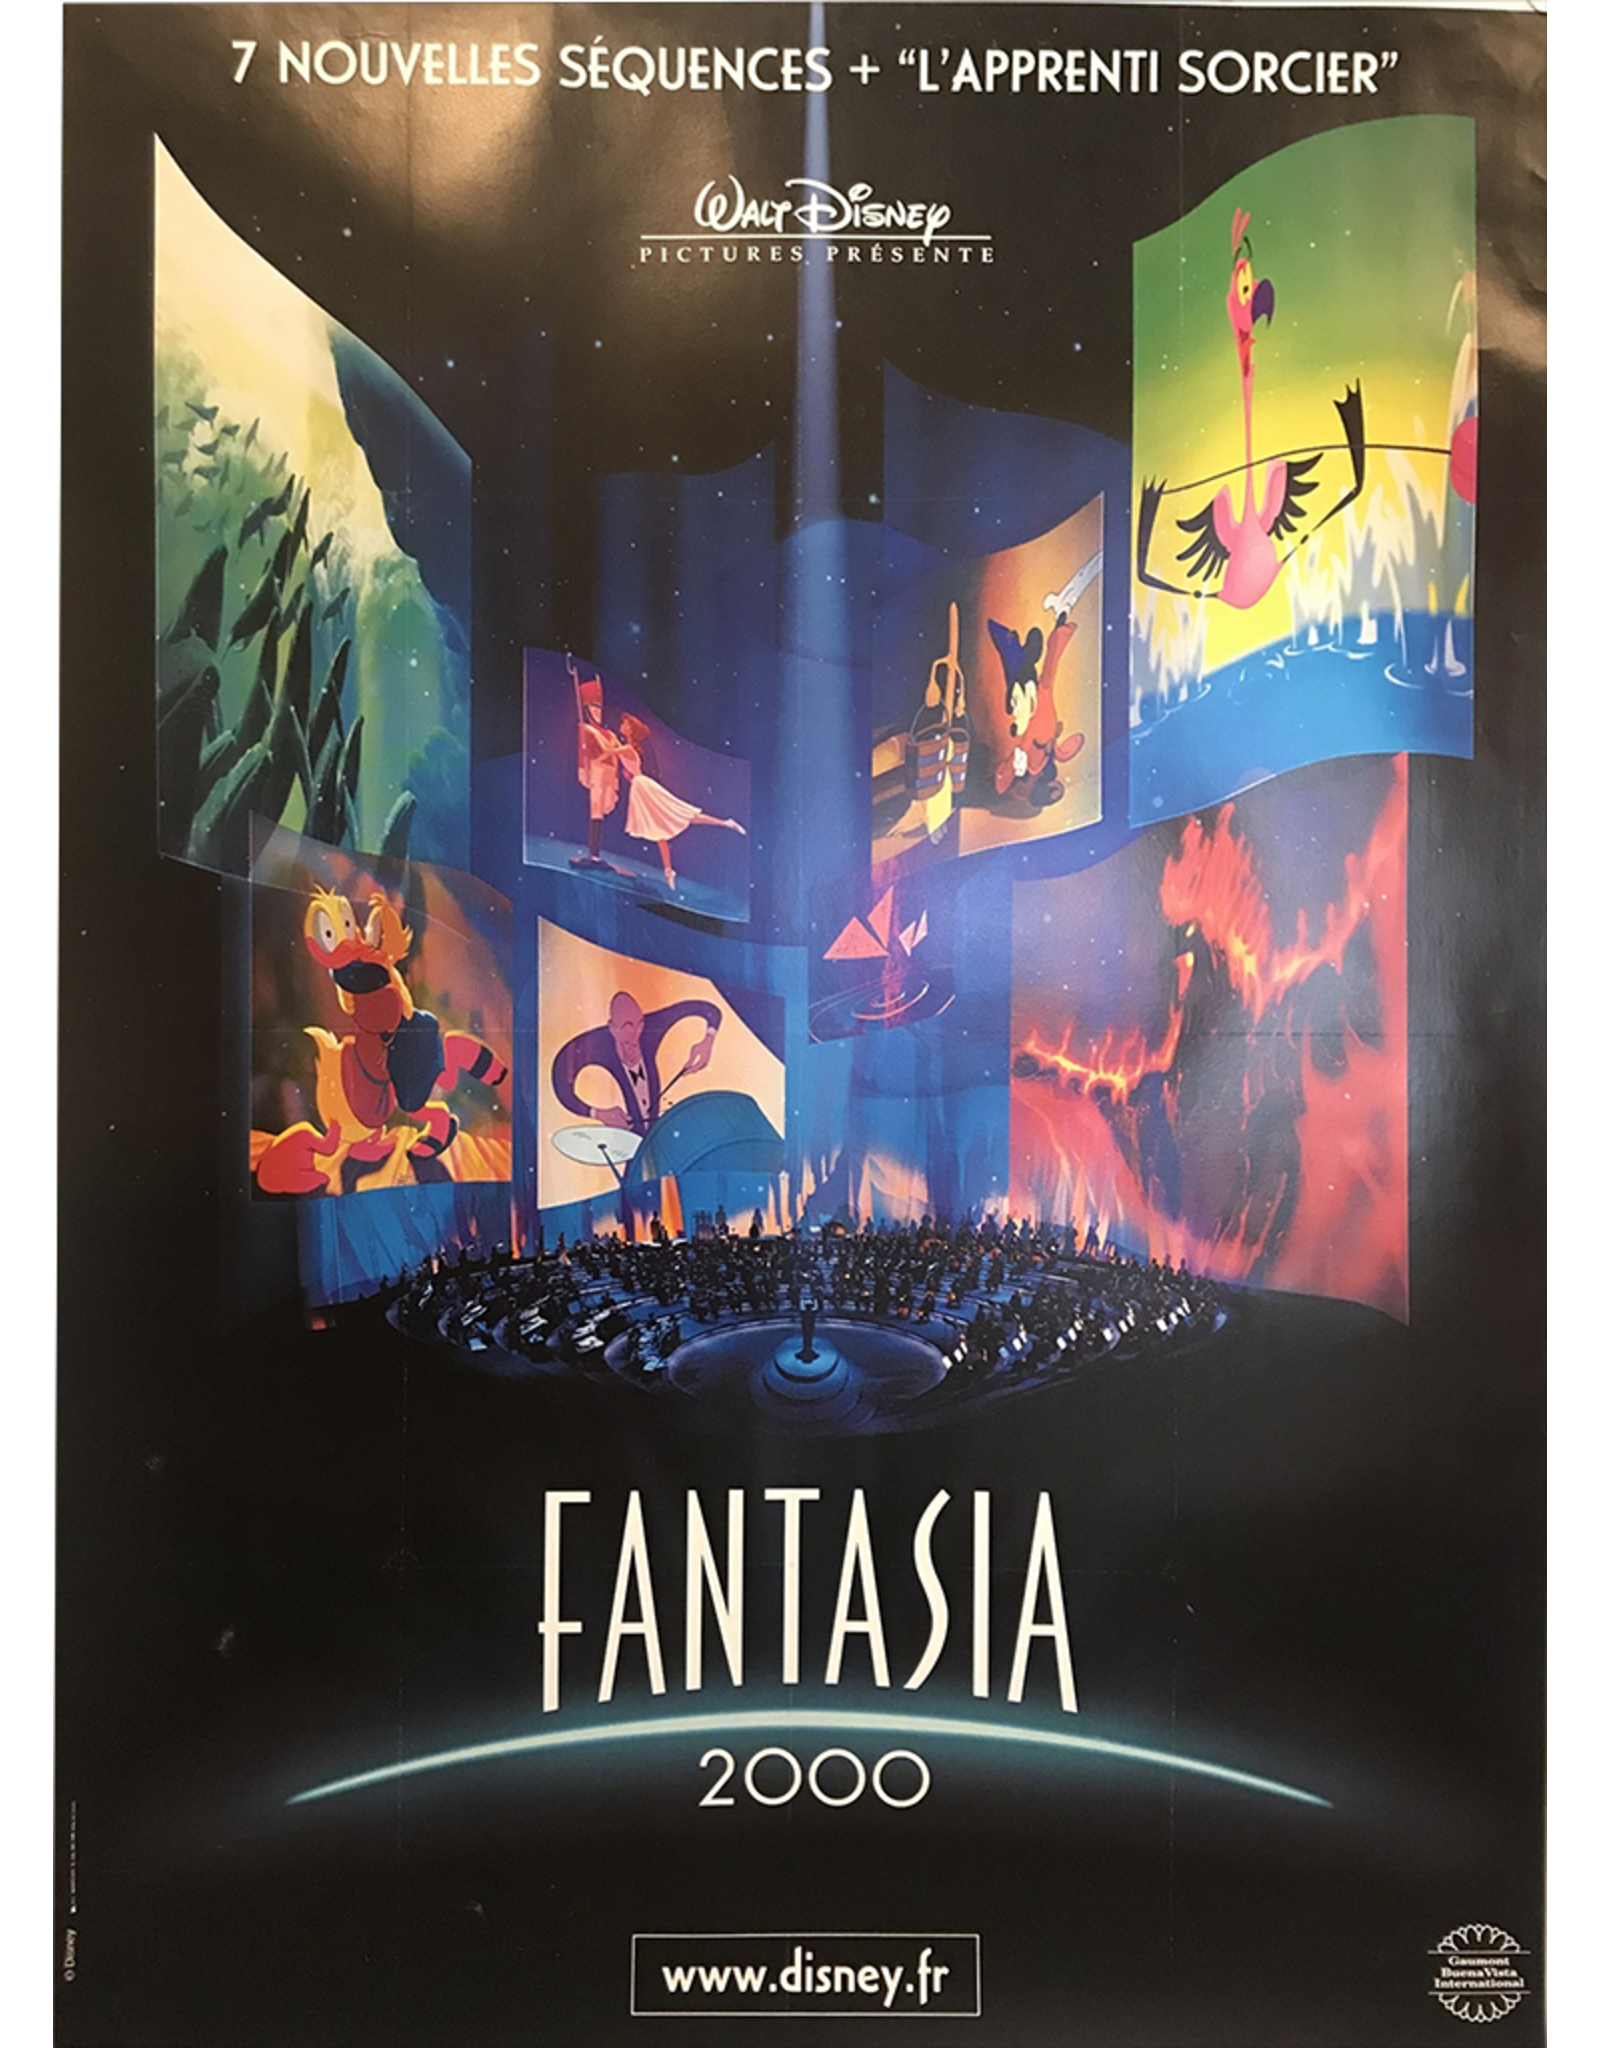 French Fantasia 2000 Poster South Pointe Vintage